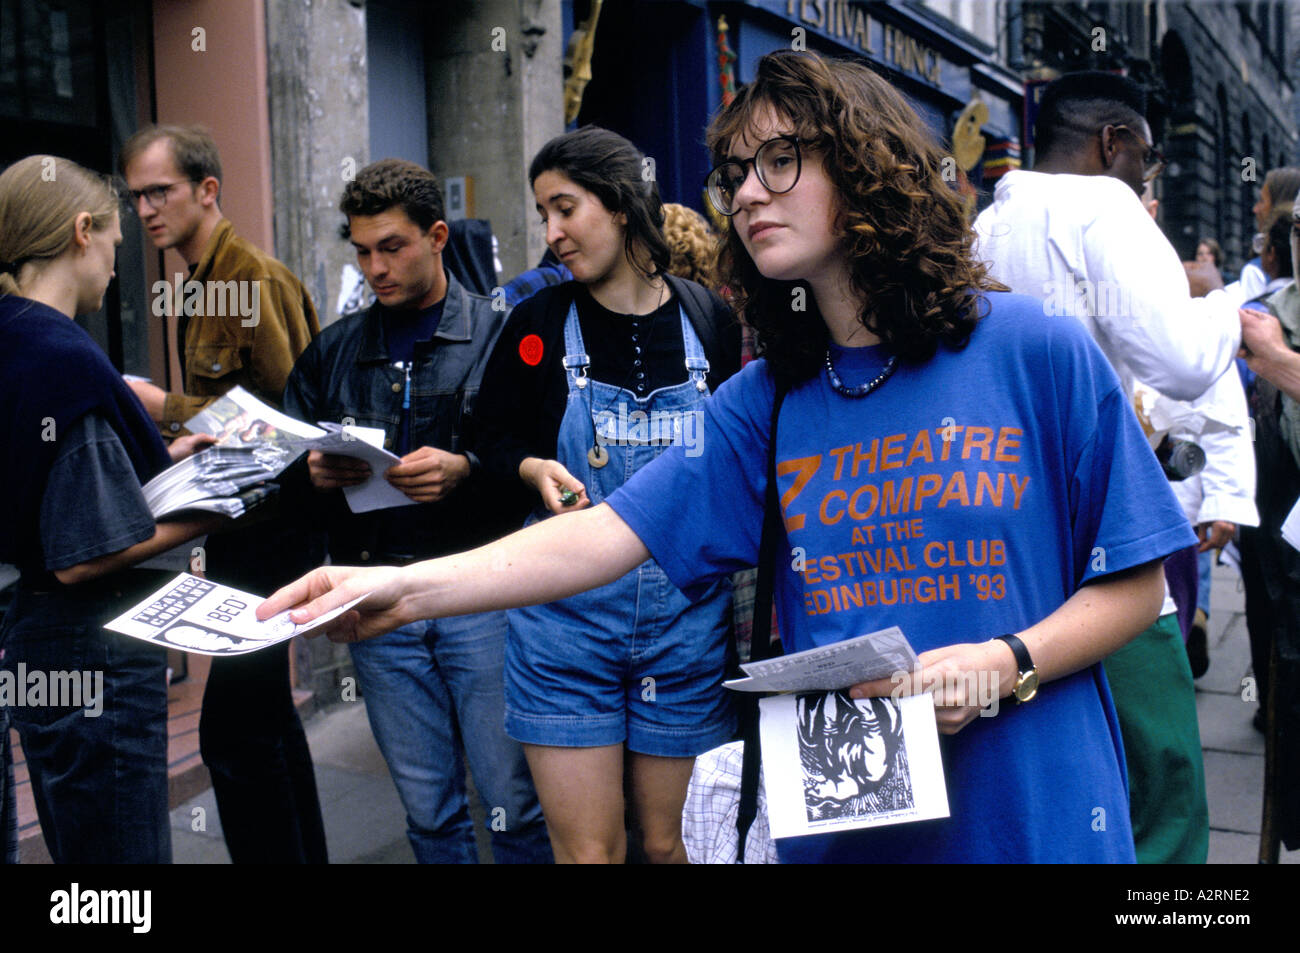 theatre company staff handing out flyers on the street edinburgh